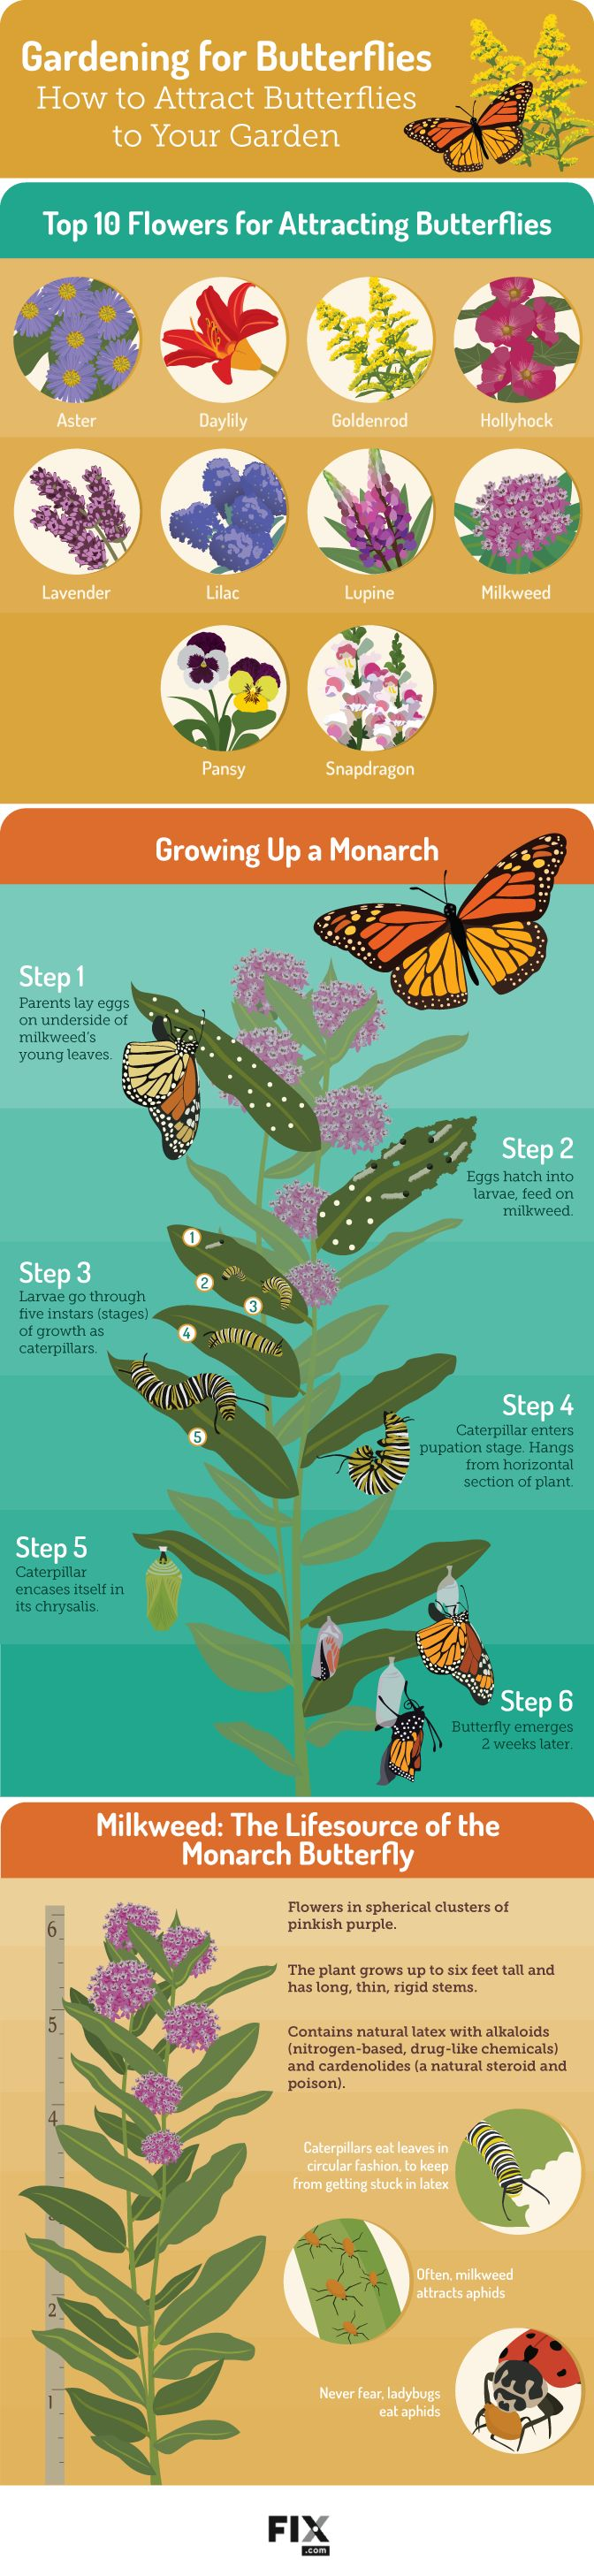 Gardening for Butterflies How to Attract Butterflies to Your Garden #infographic